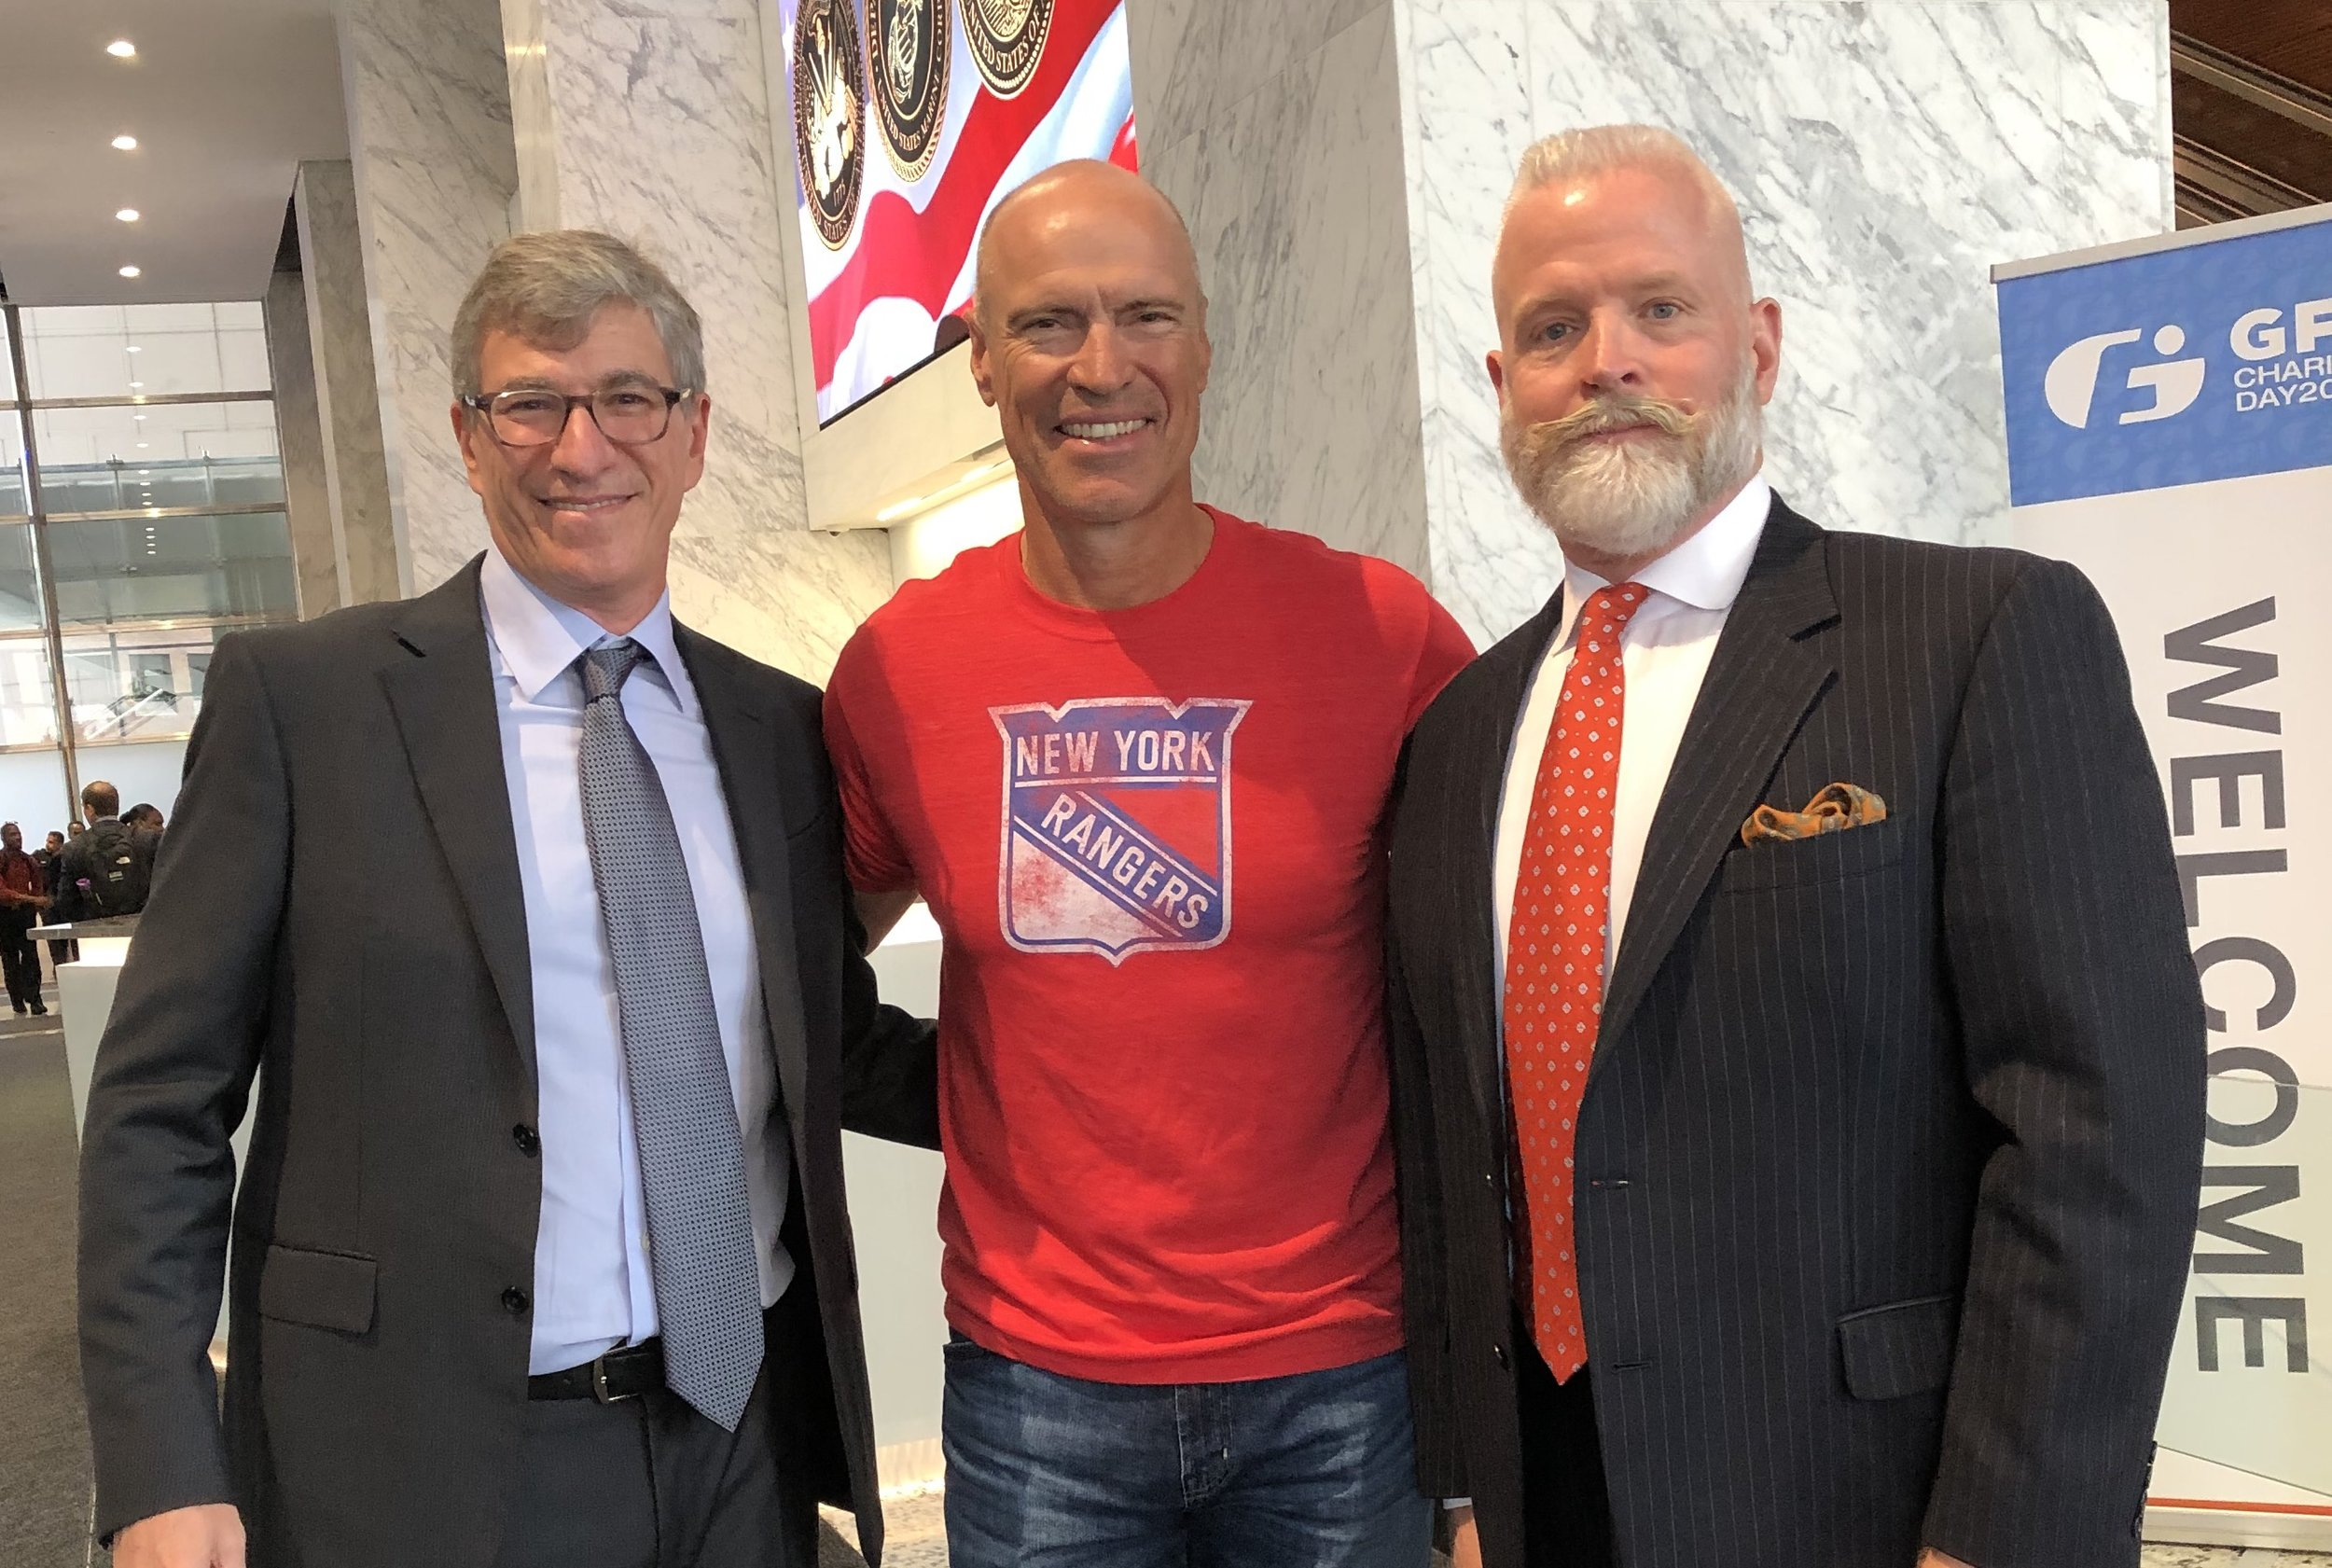 From left: HHF Board Vice Chair Paul Orlin, Retired Hockey Pro Mark Messier, CEO Timothy Higdon